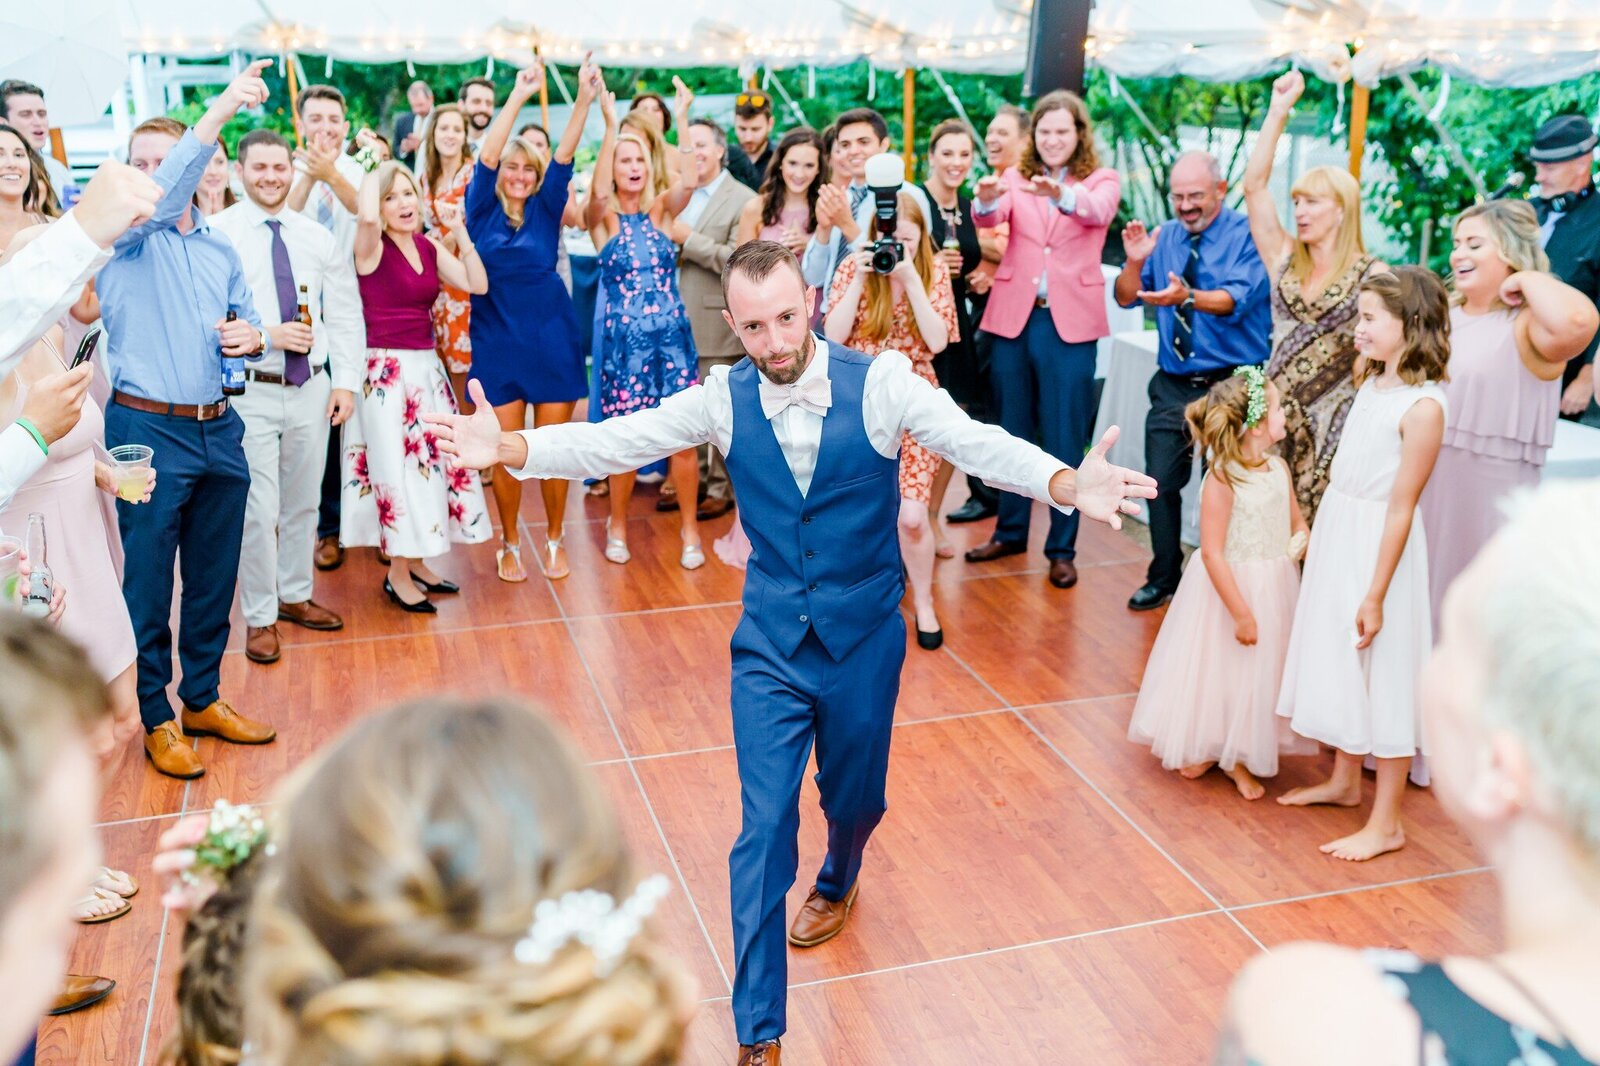 Groomsmen dancing at New Hampshire Wedding Reception